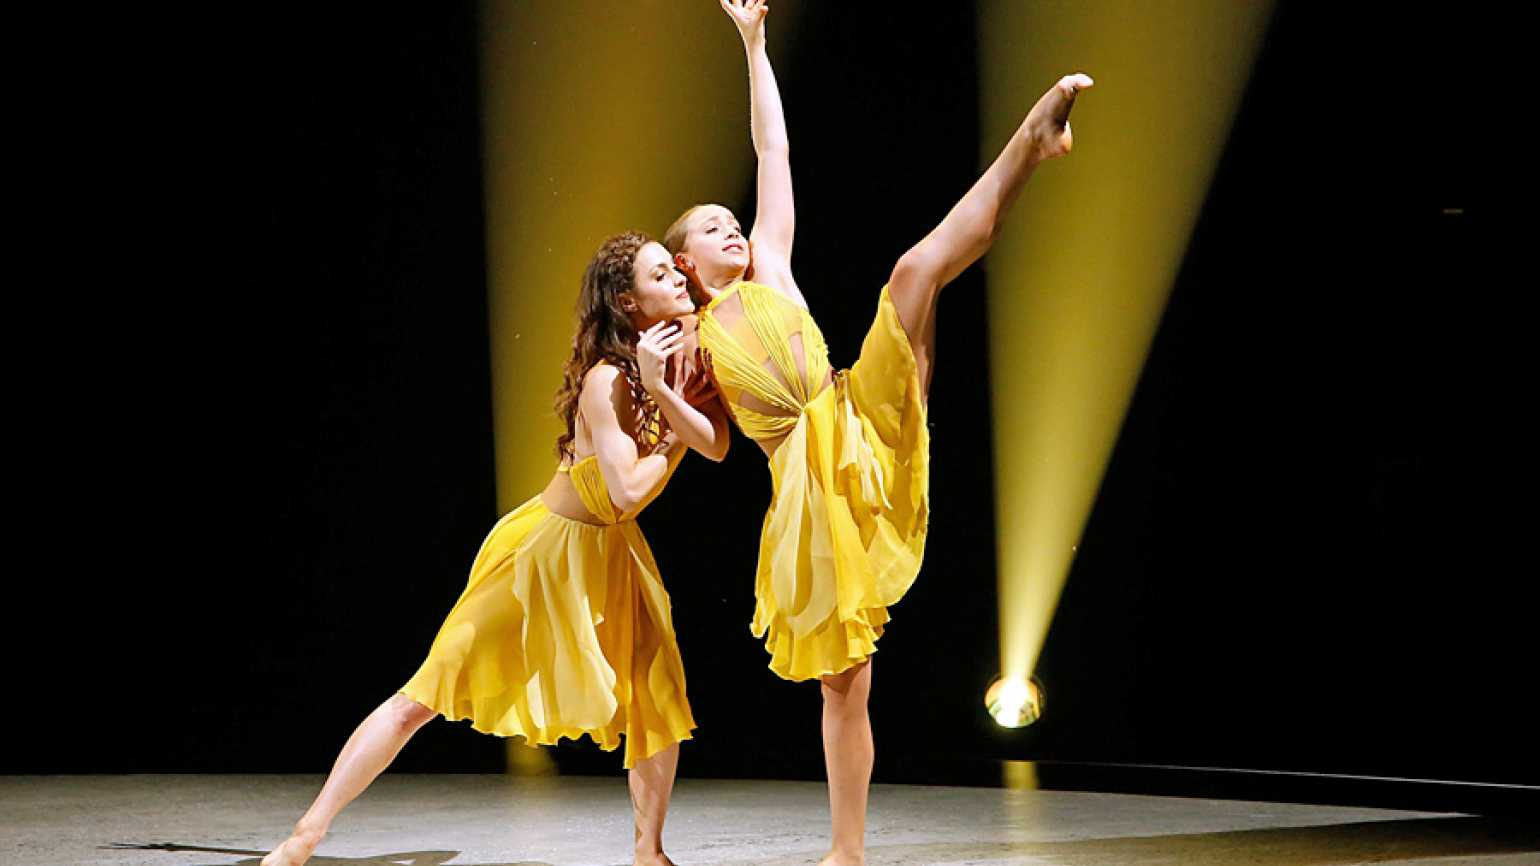 So You Think You Can Dance Star Kathryn McCormick Next ...